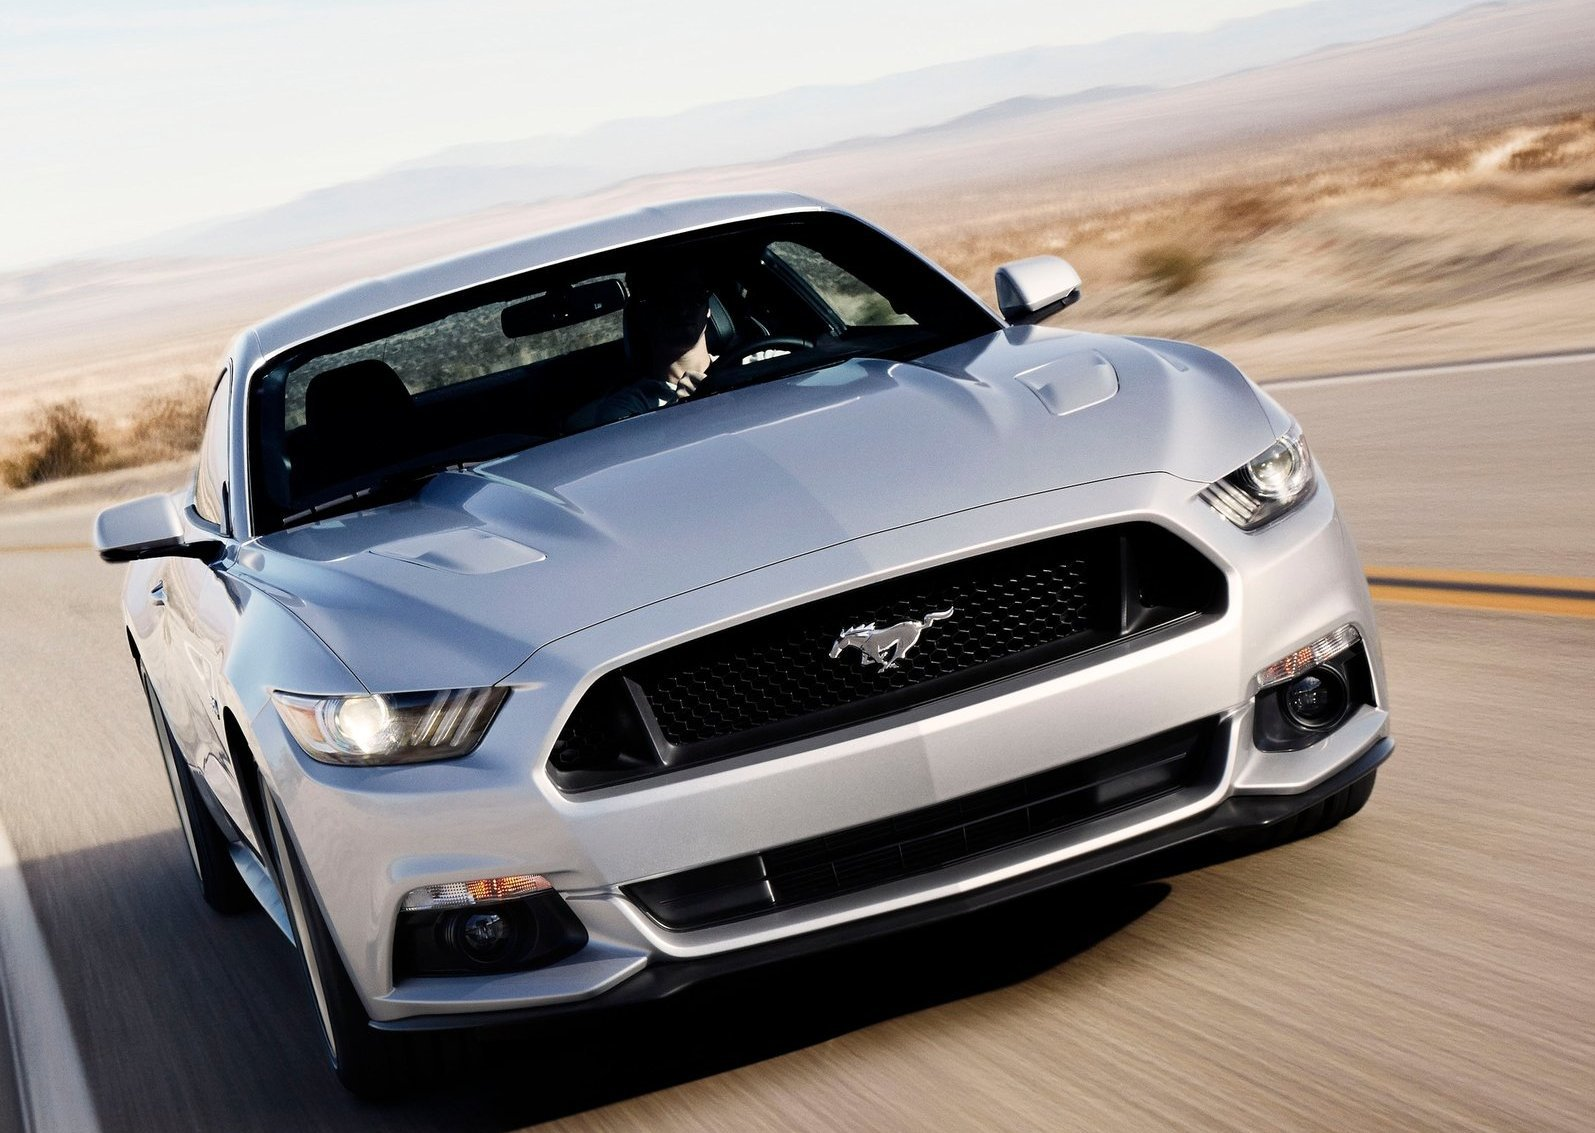 Ford-Mustang_GT_2015_1600x1200_wallpaper_17.jpg